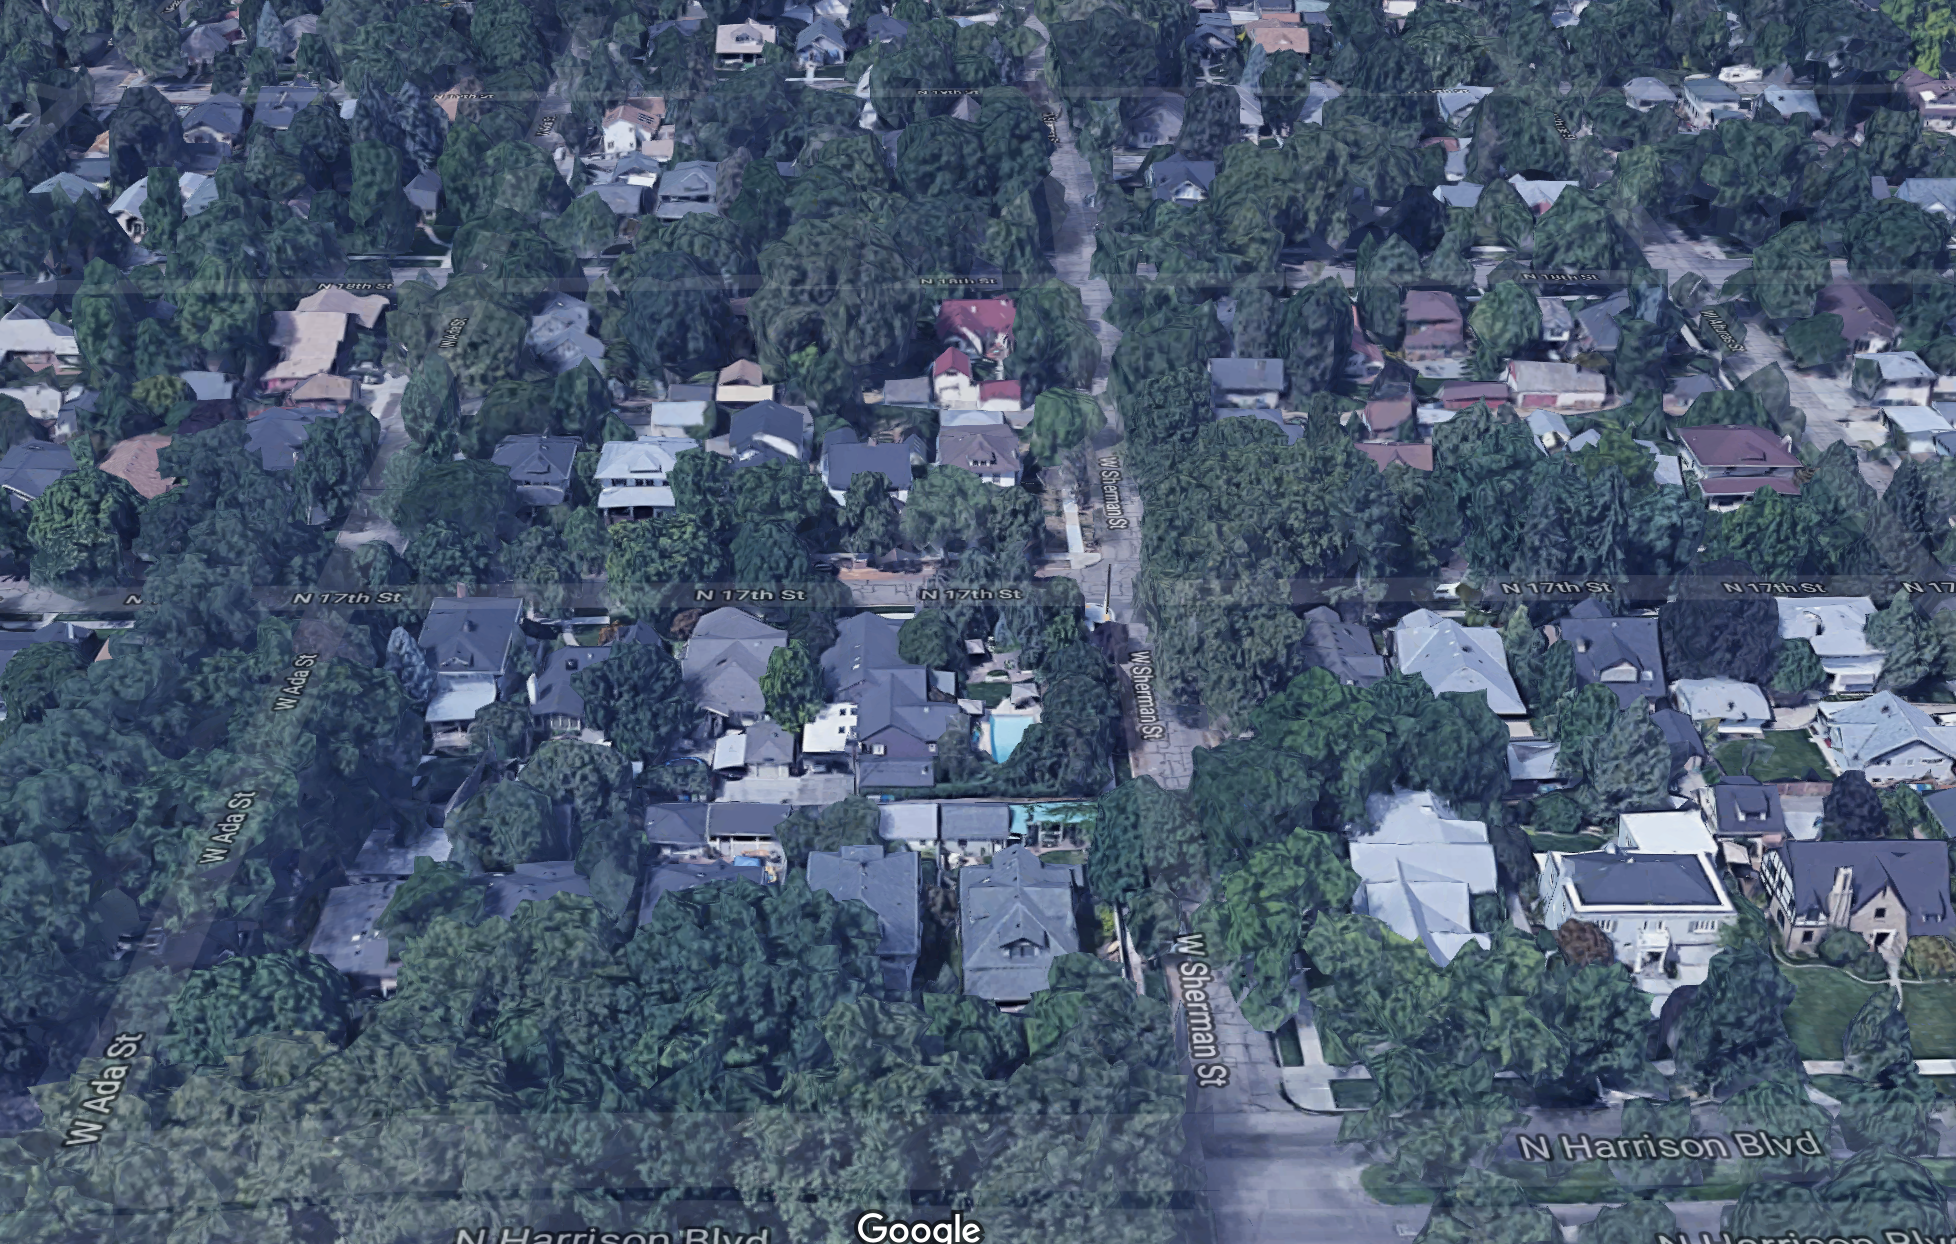 A Google Earth view of the North End